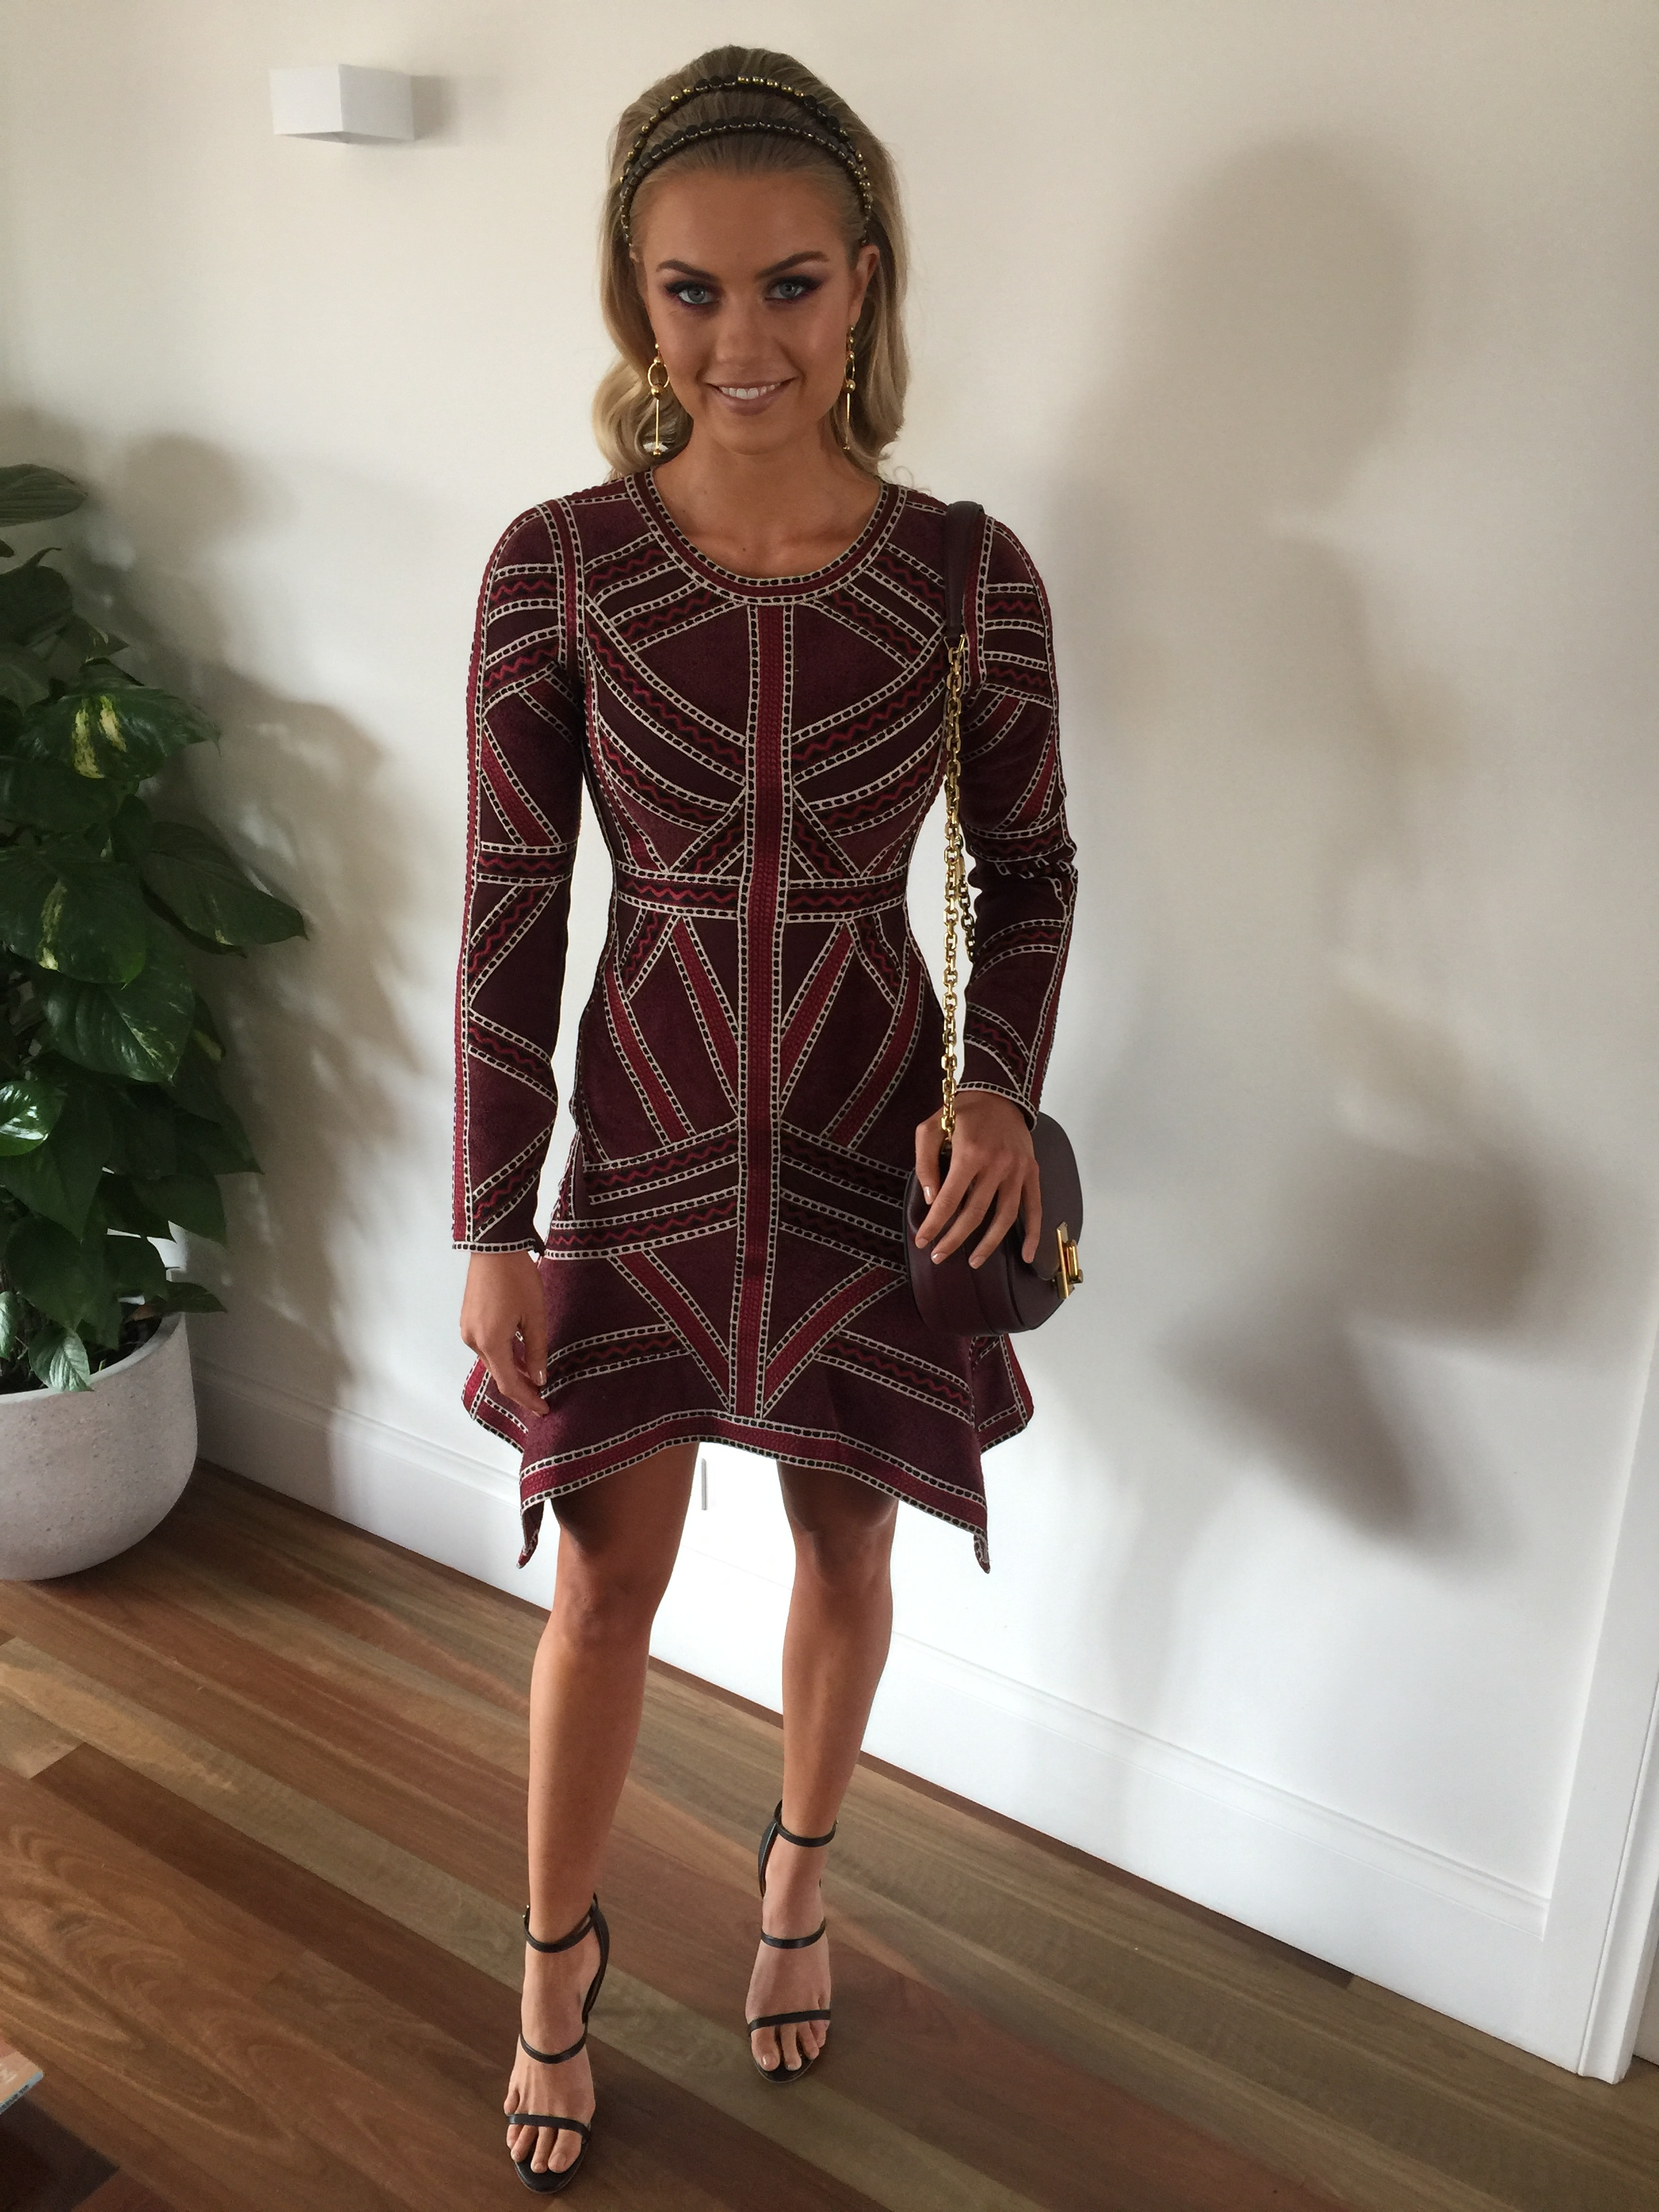 Elyse Knowles Melbourne Cup Day 2016  1-11-16, 10 40 23 am.jpg